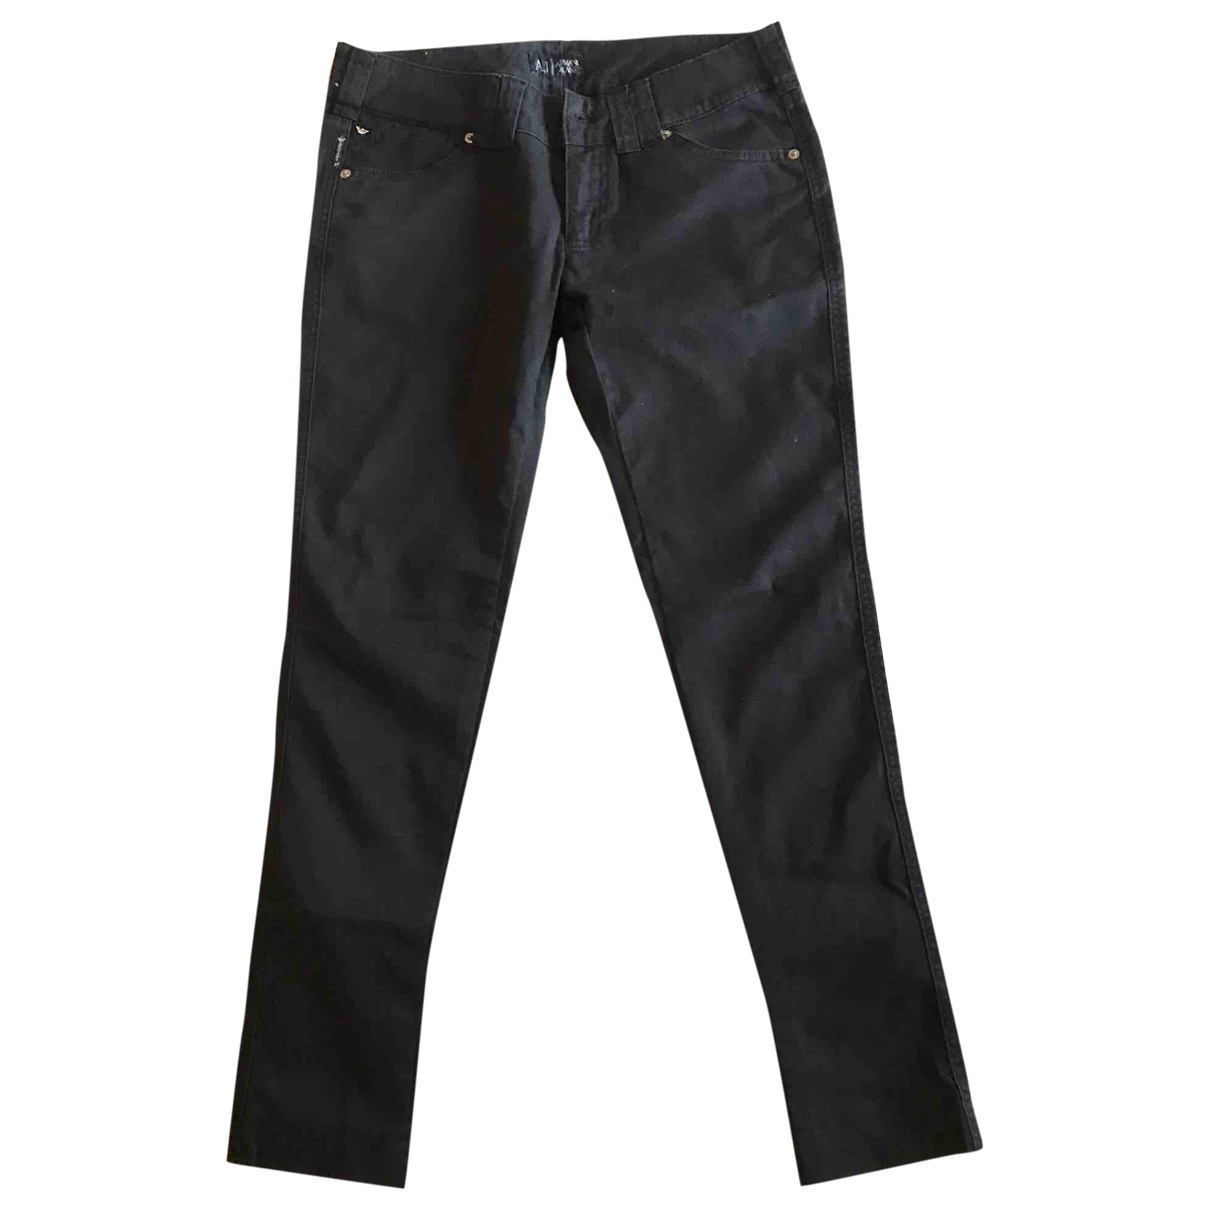 Armani Jeans \N Black Cotton - elasthane Jeans for Women 28 US